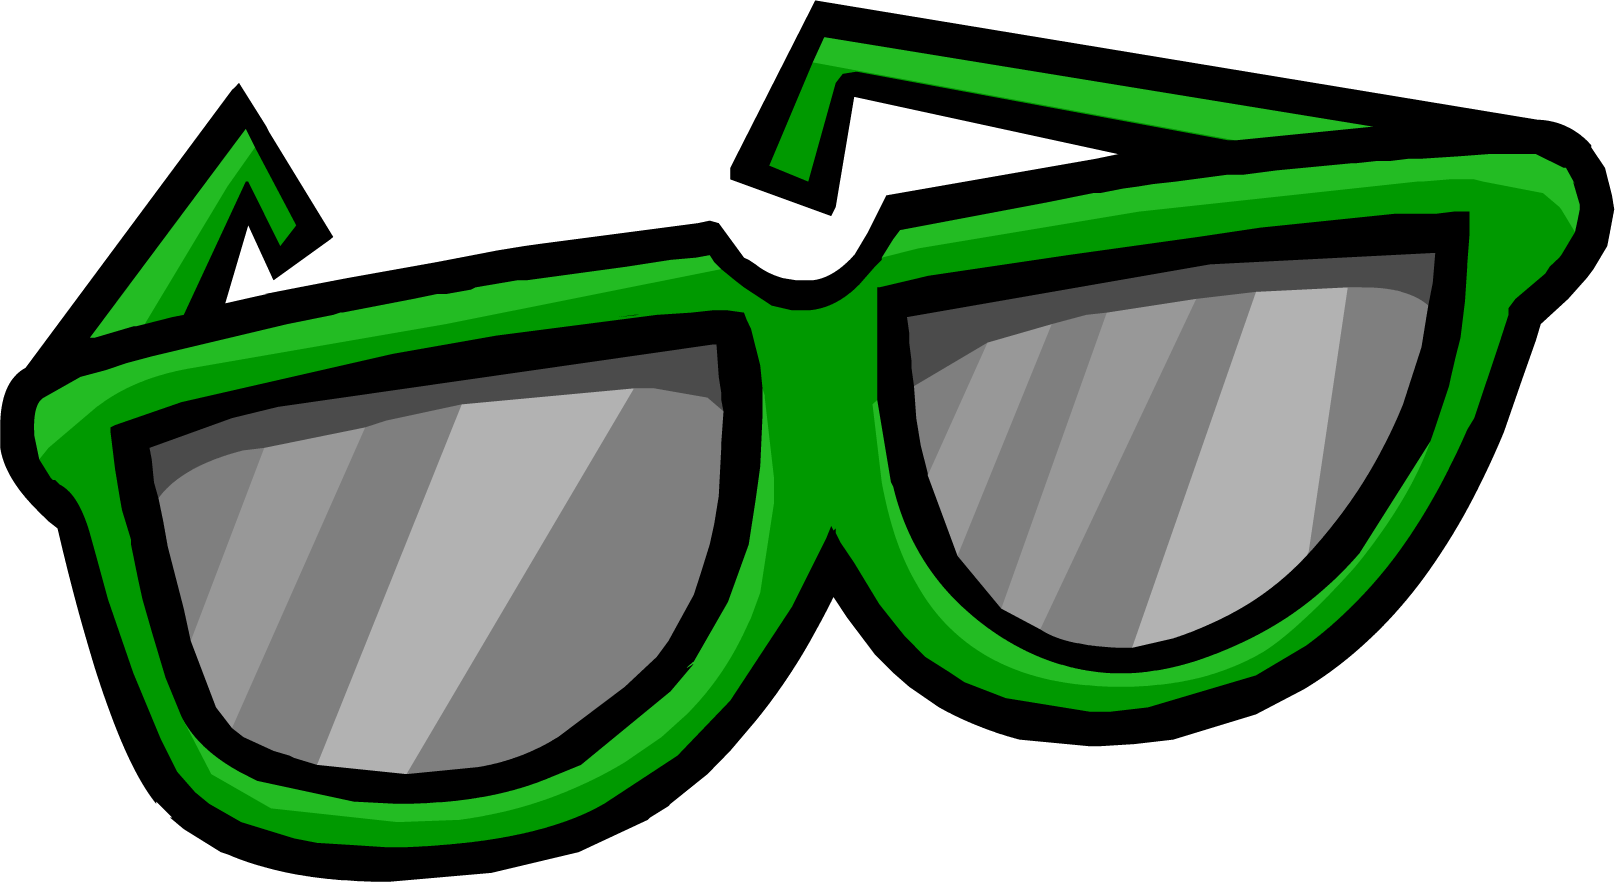 Download Sunglasses Clipart HQ PNG Image.